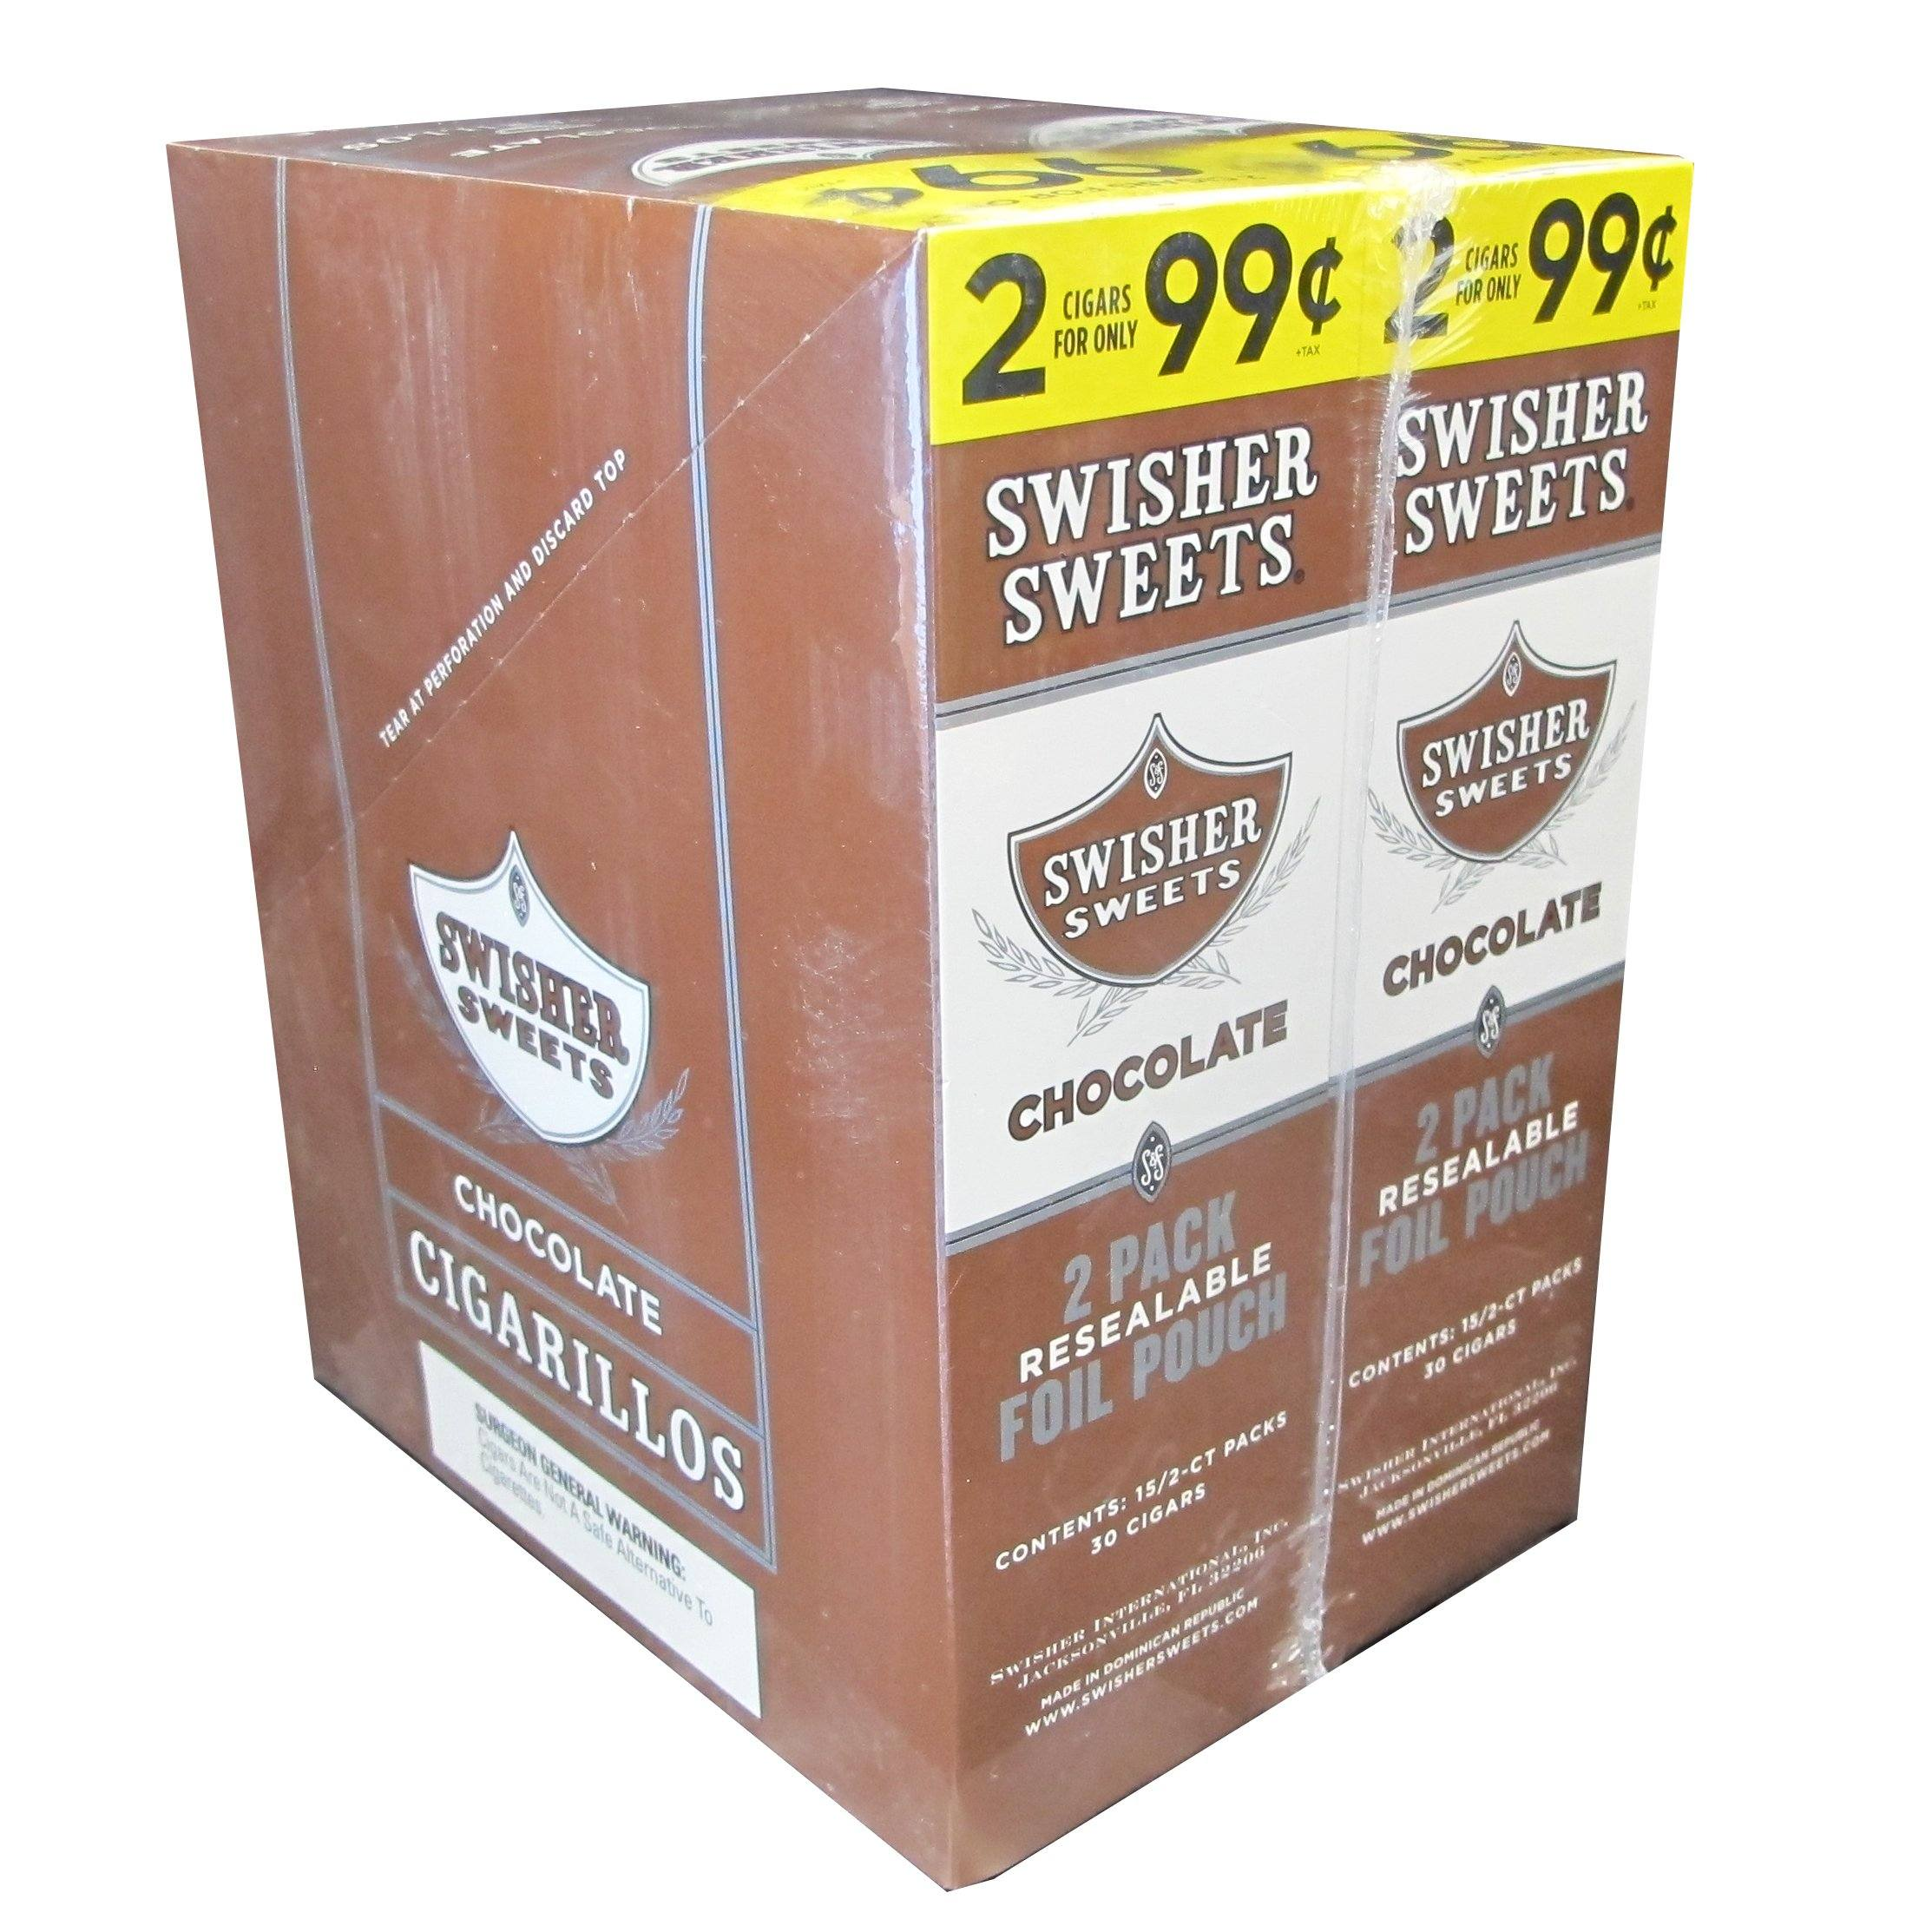 Swisher Sweets Chocolate Cigarillos